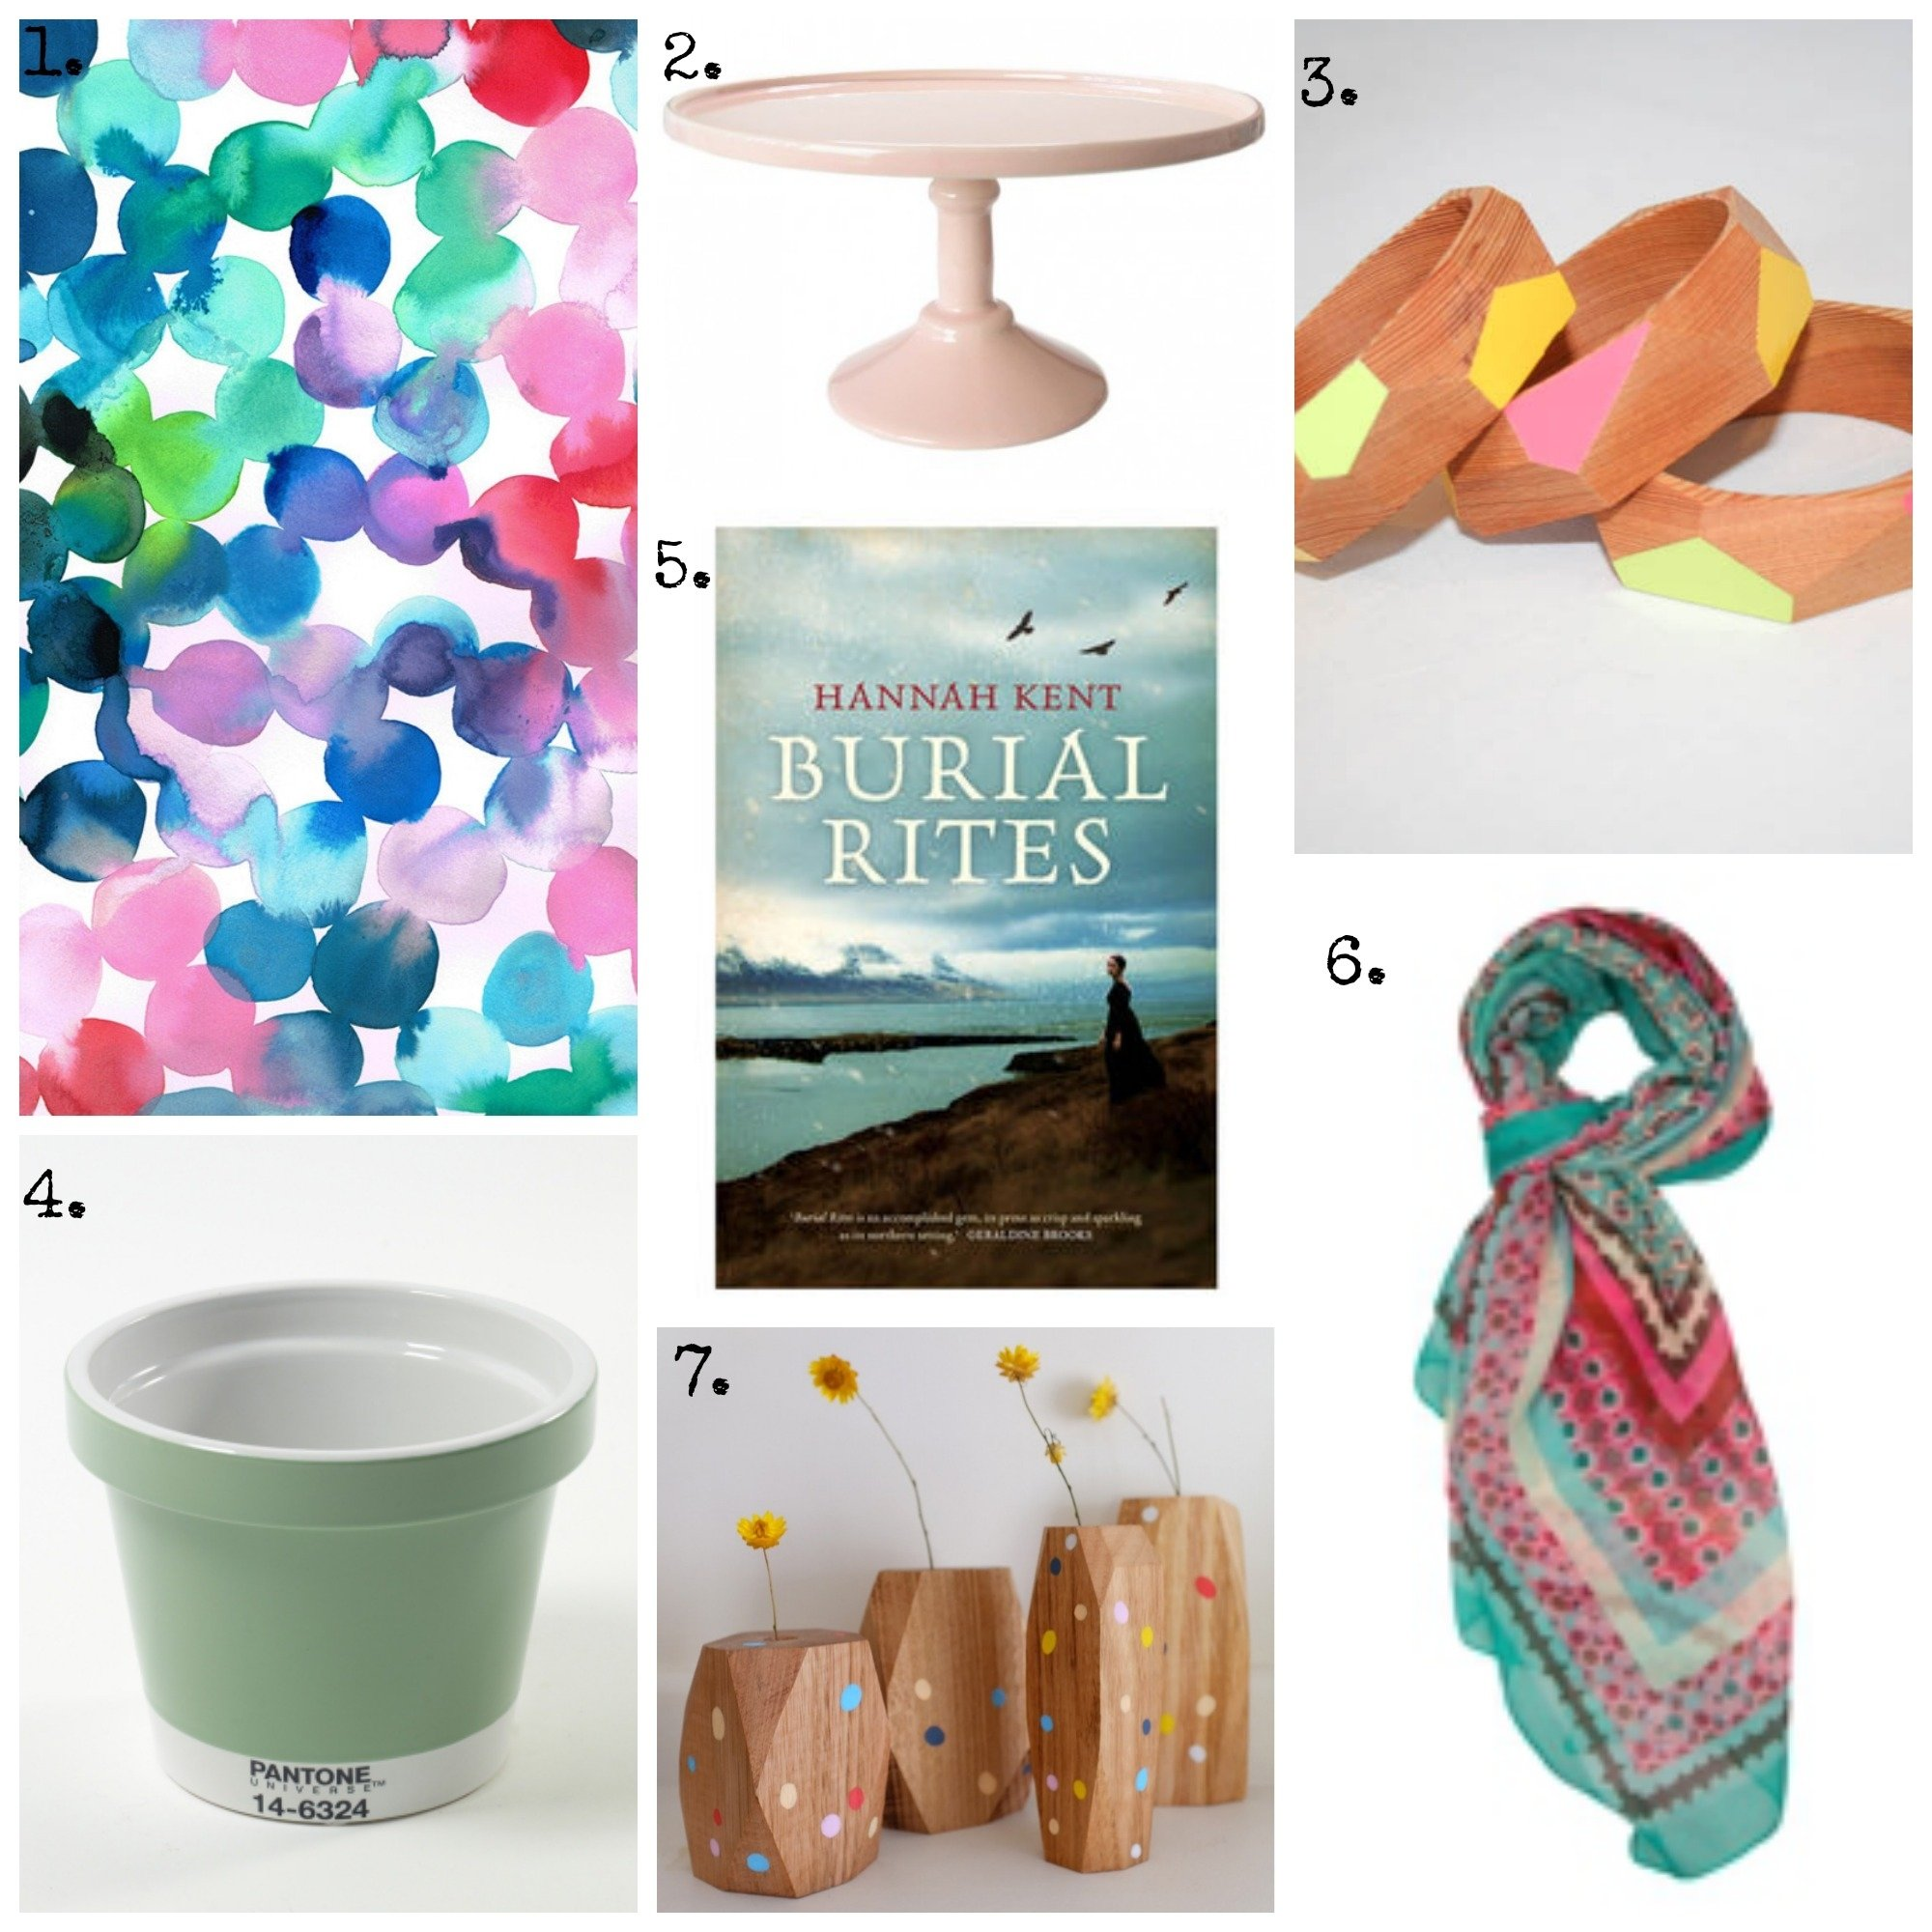 10 Wonderful Birthday Present Ideas For Her the top 7 gorgeous gift ideas for women style shenanigans 1 2020